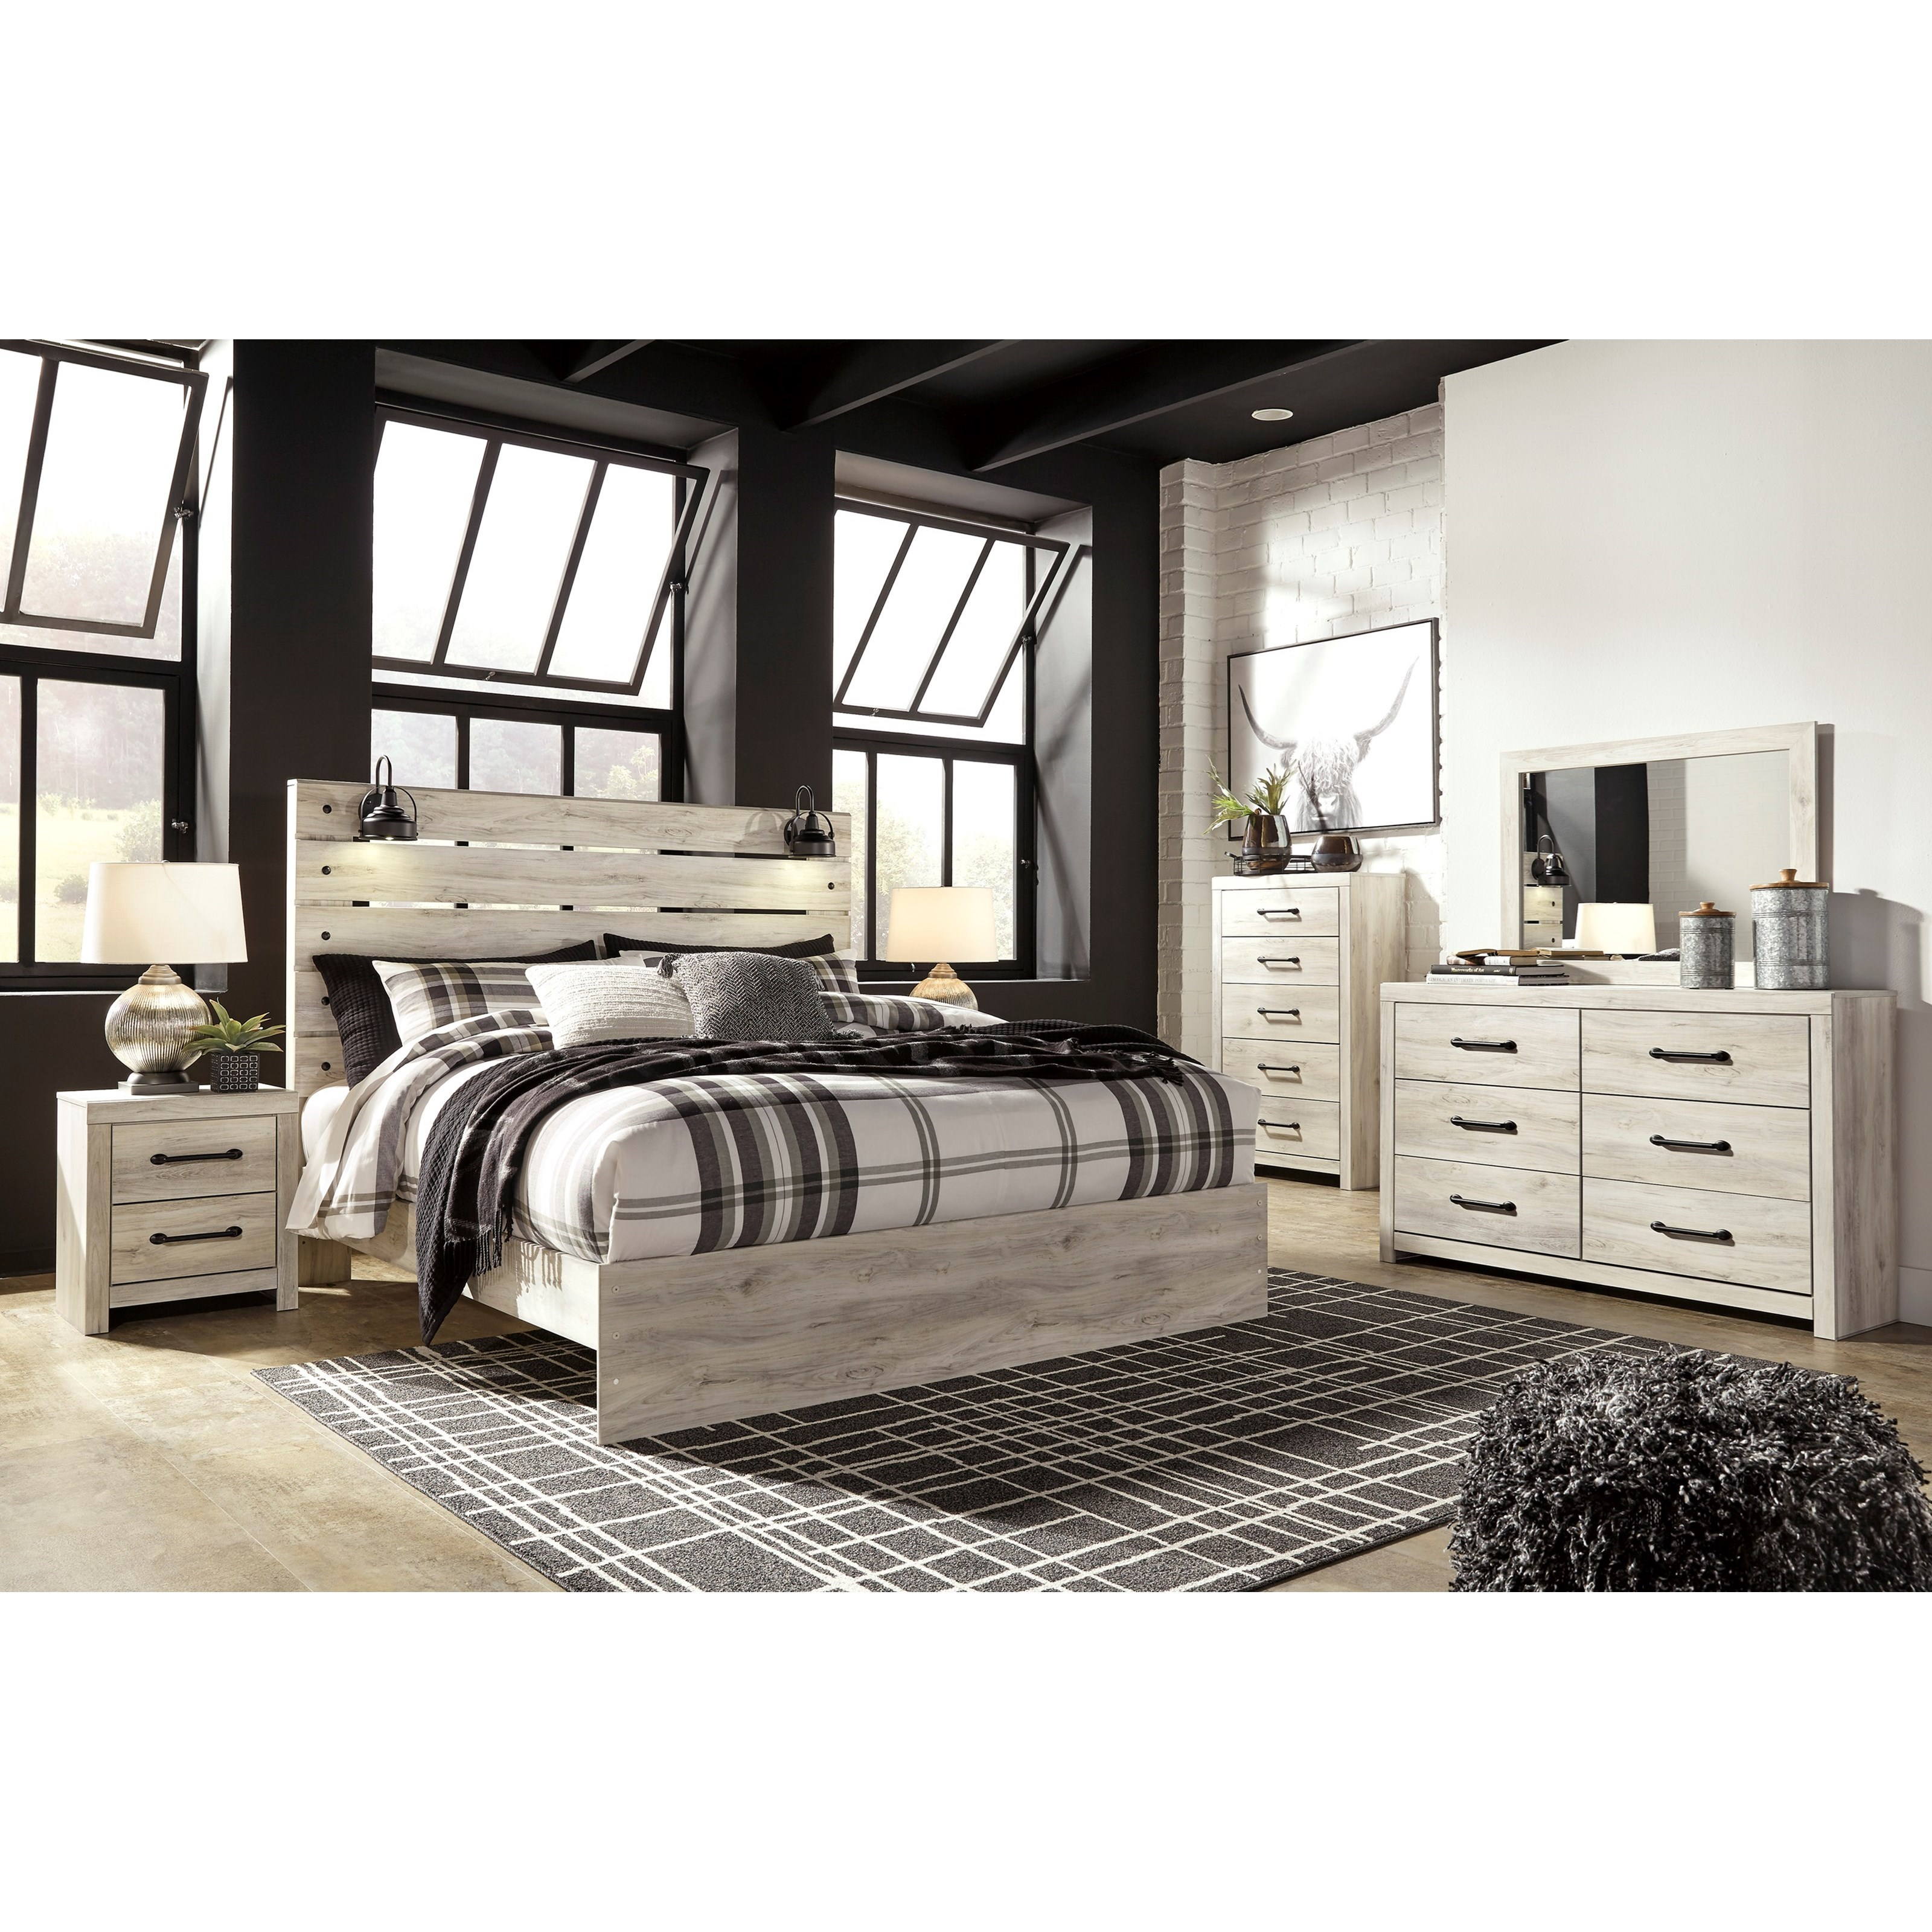 Cambeck King Bedroom Group by Signature Design by Ashley at Sparks HomeStore